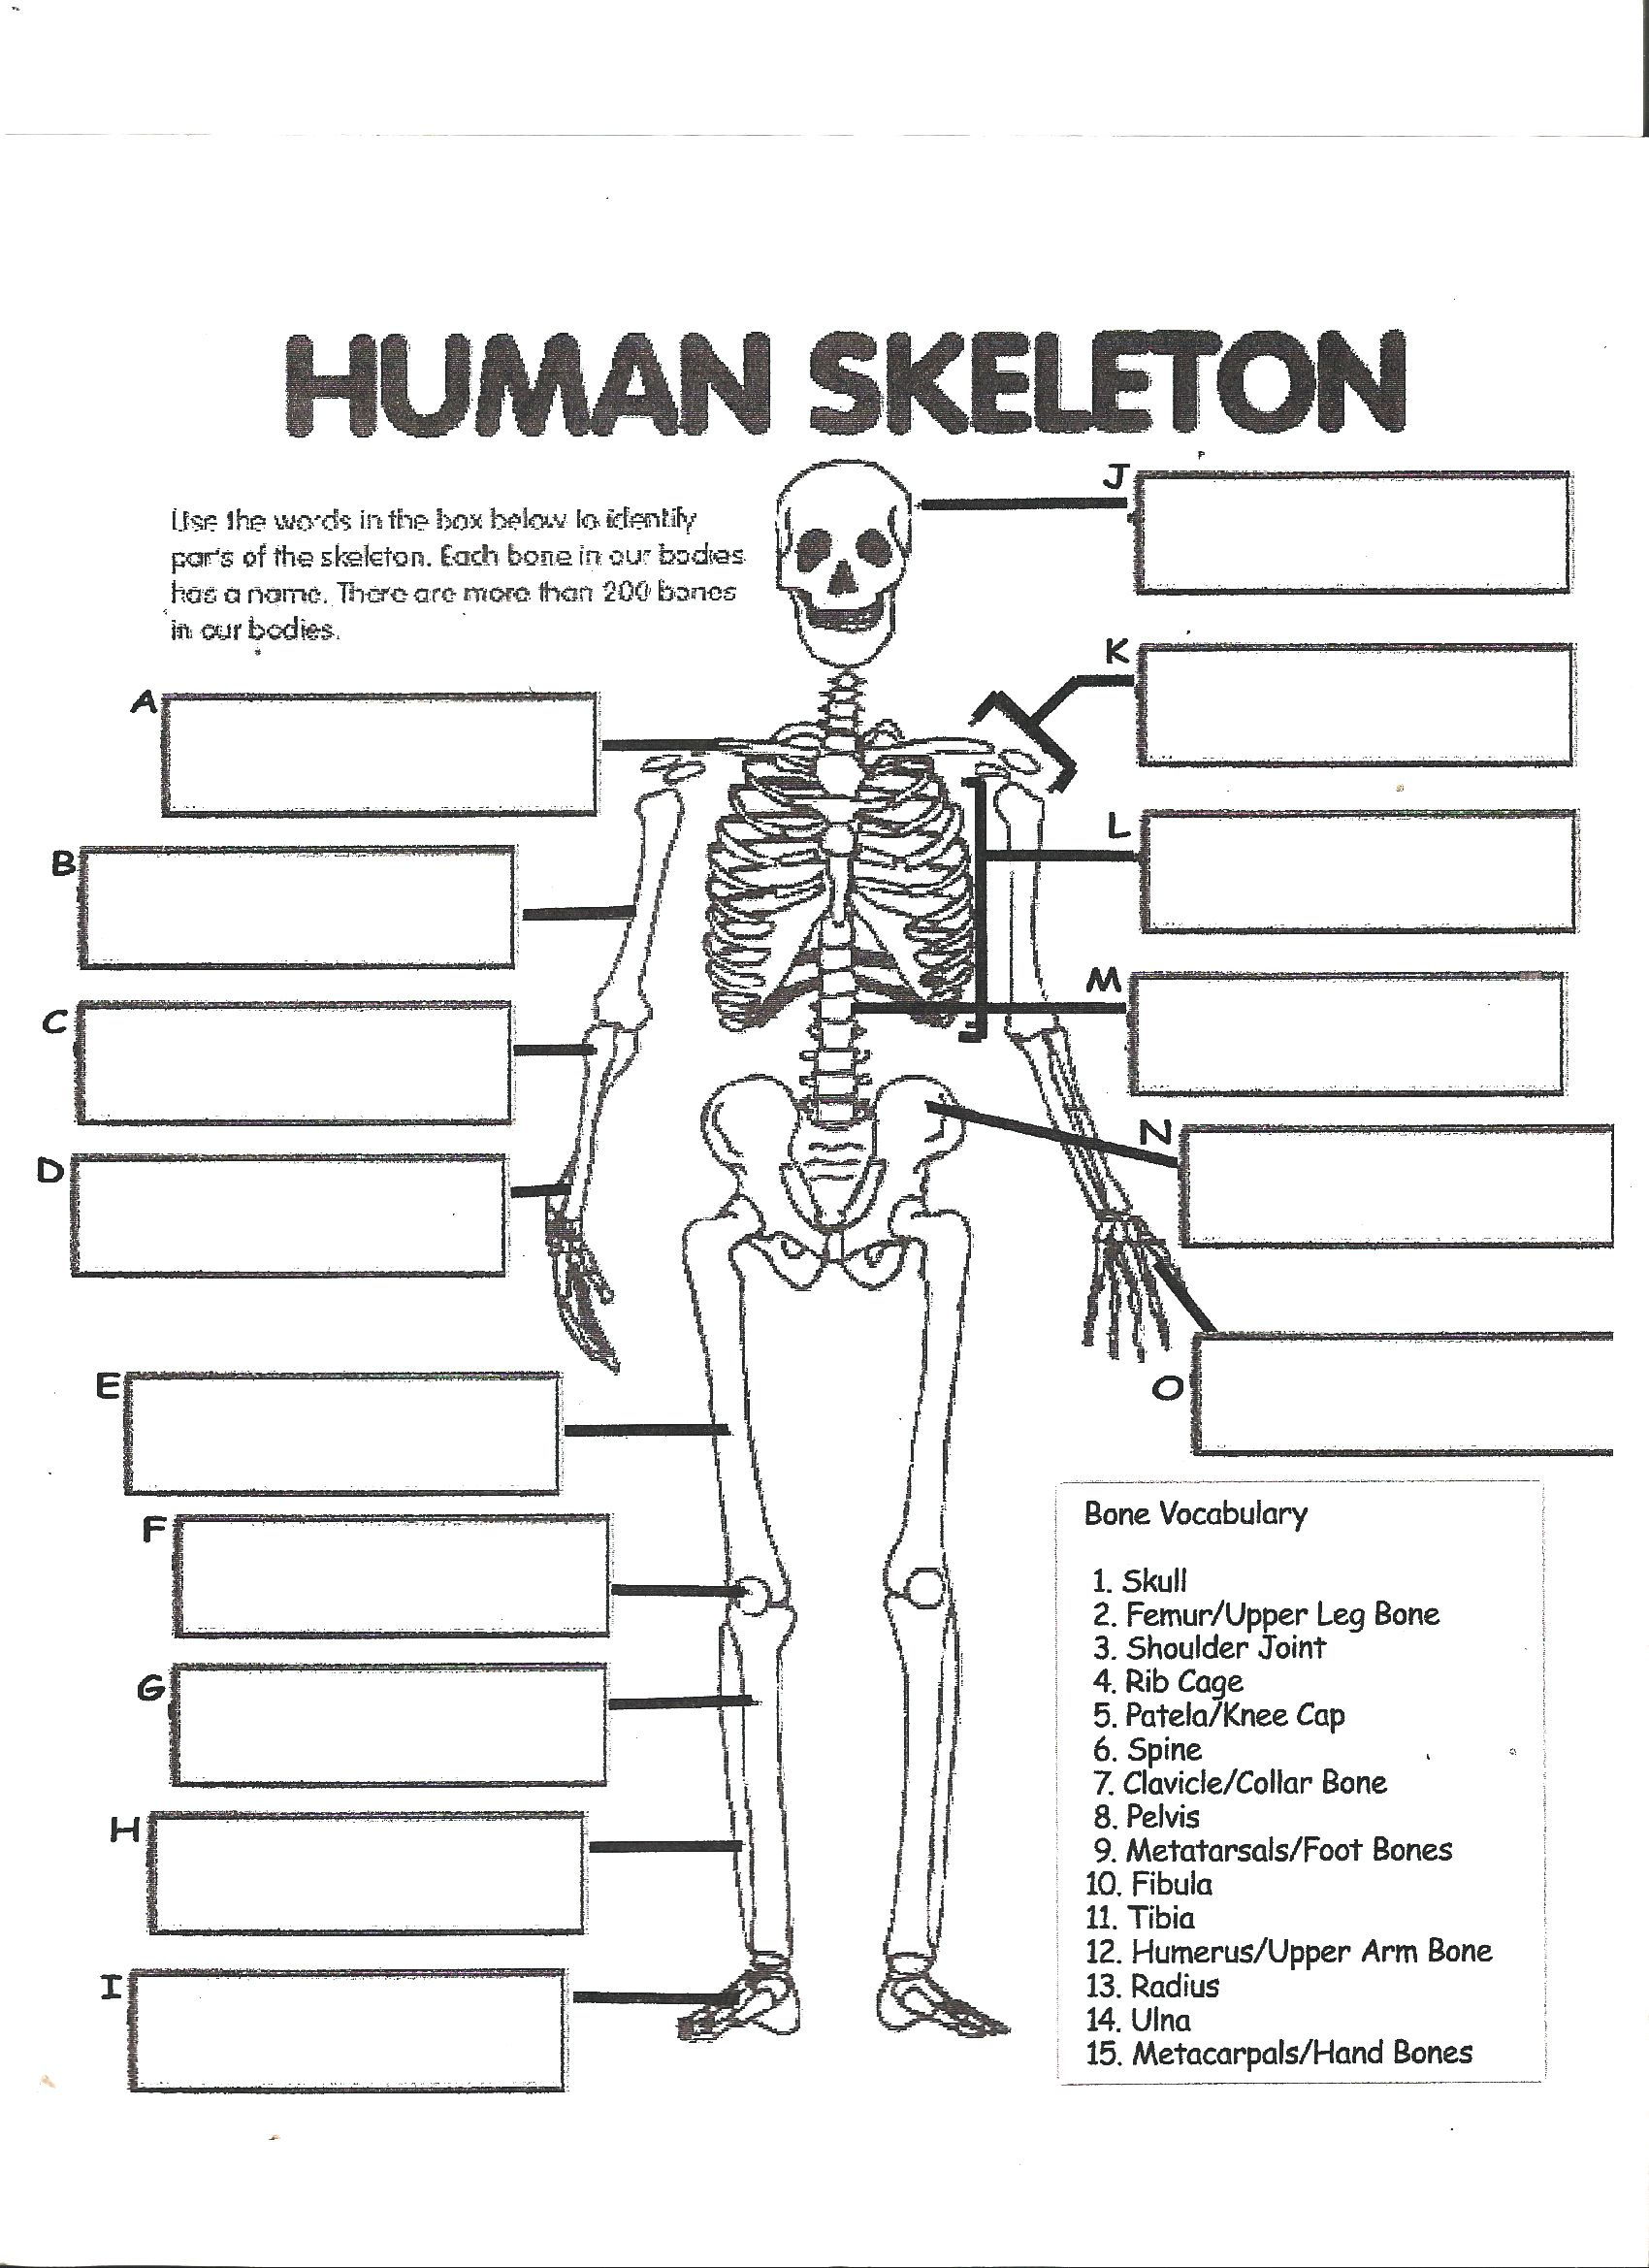 Digestive System Labeling Worksheet Answers Human skeleton – Bones Worksheet